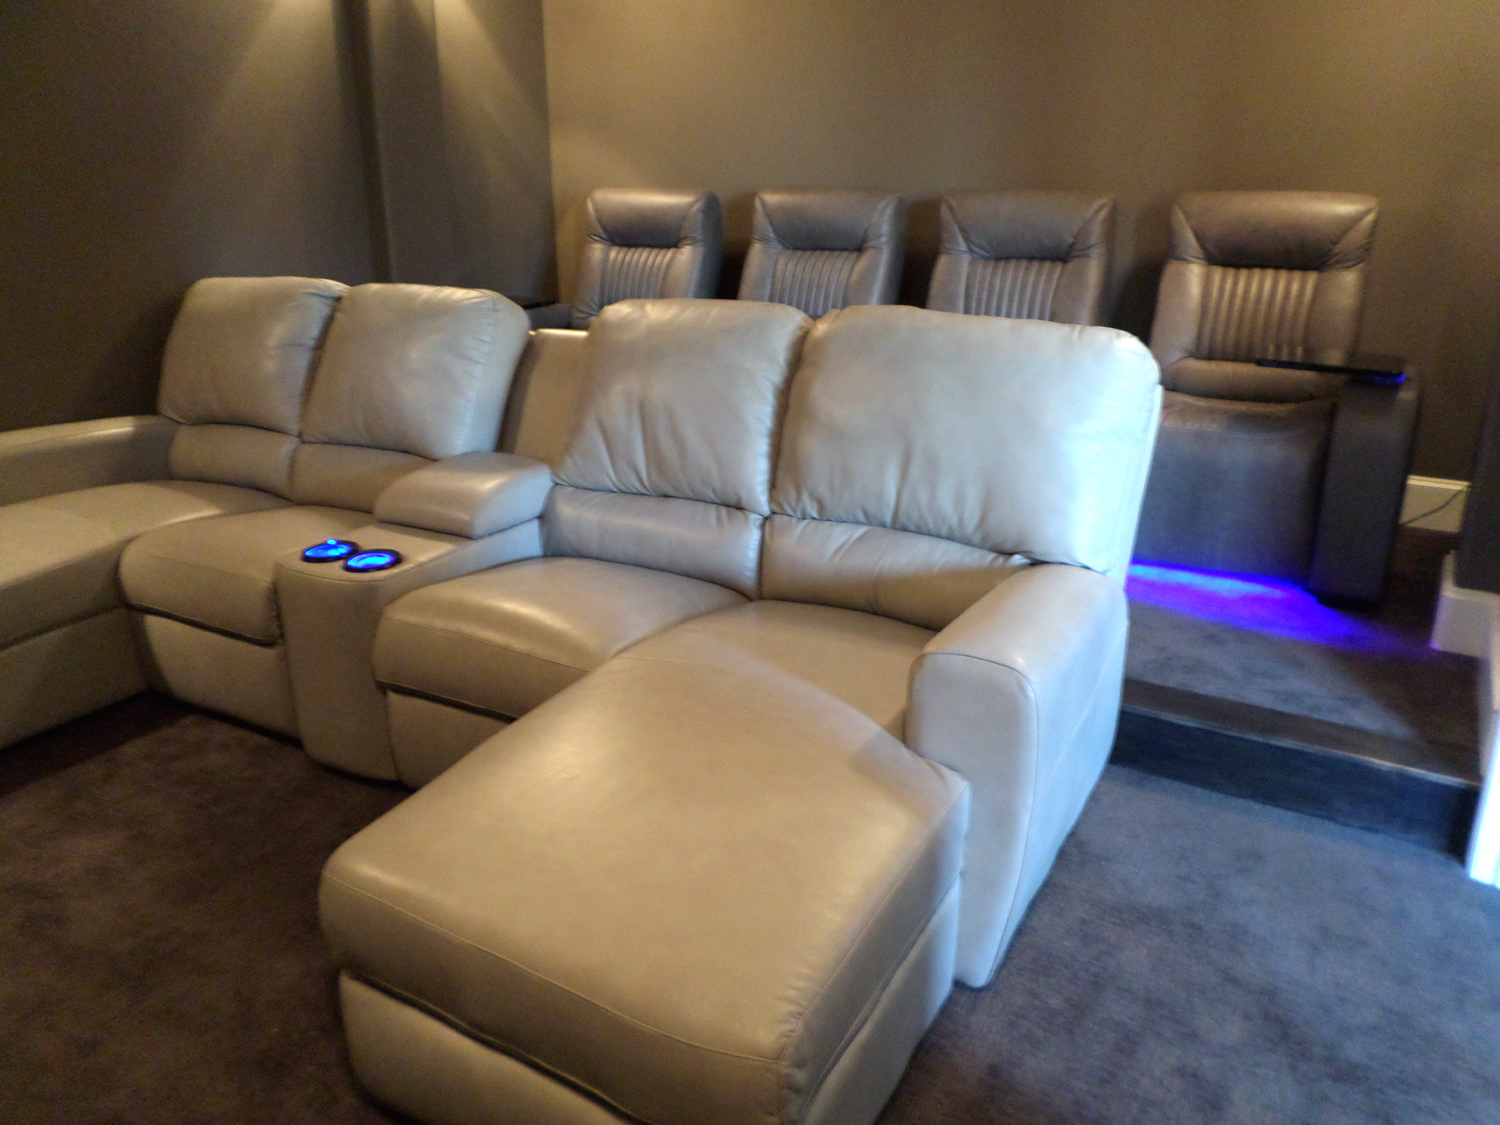 Theater Couches Palliser Theater Seating With Media Sofa Gorgeous Room